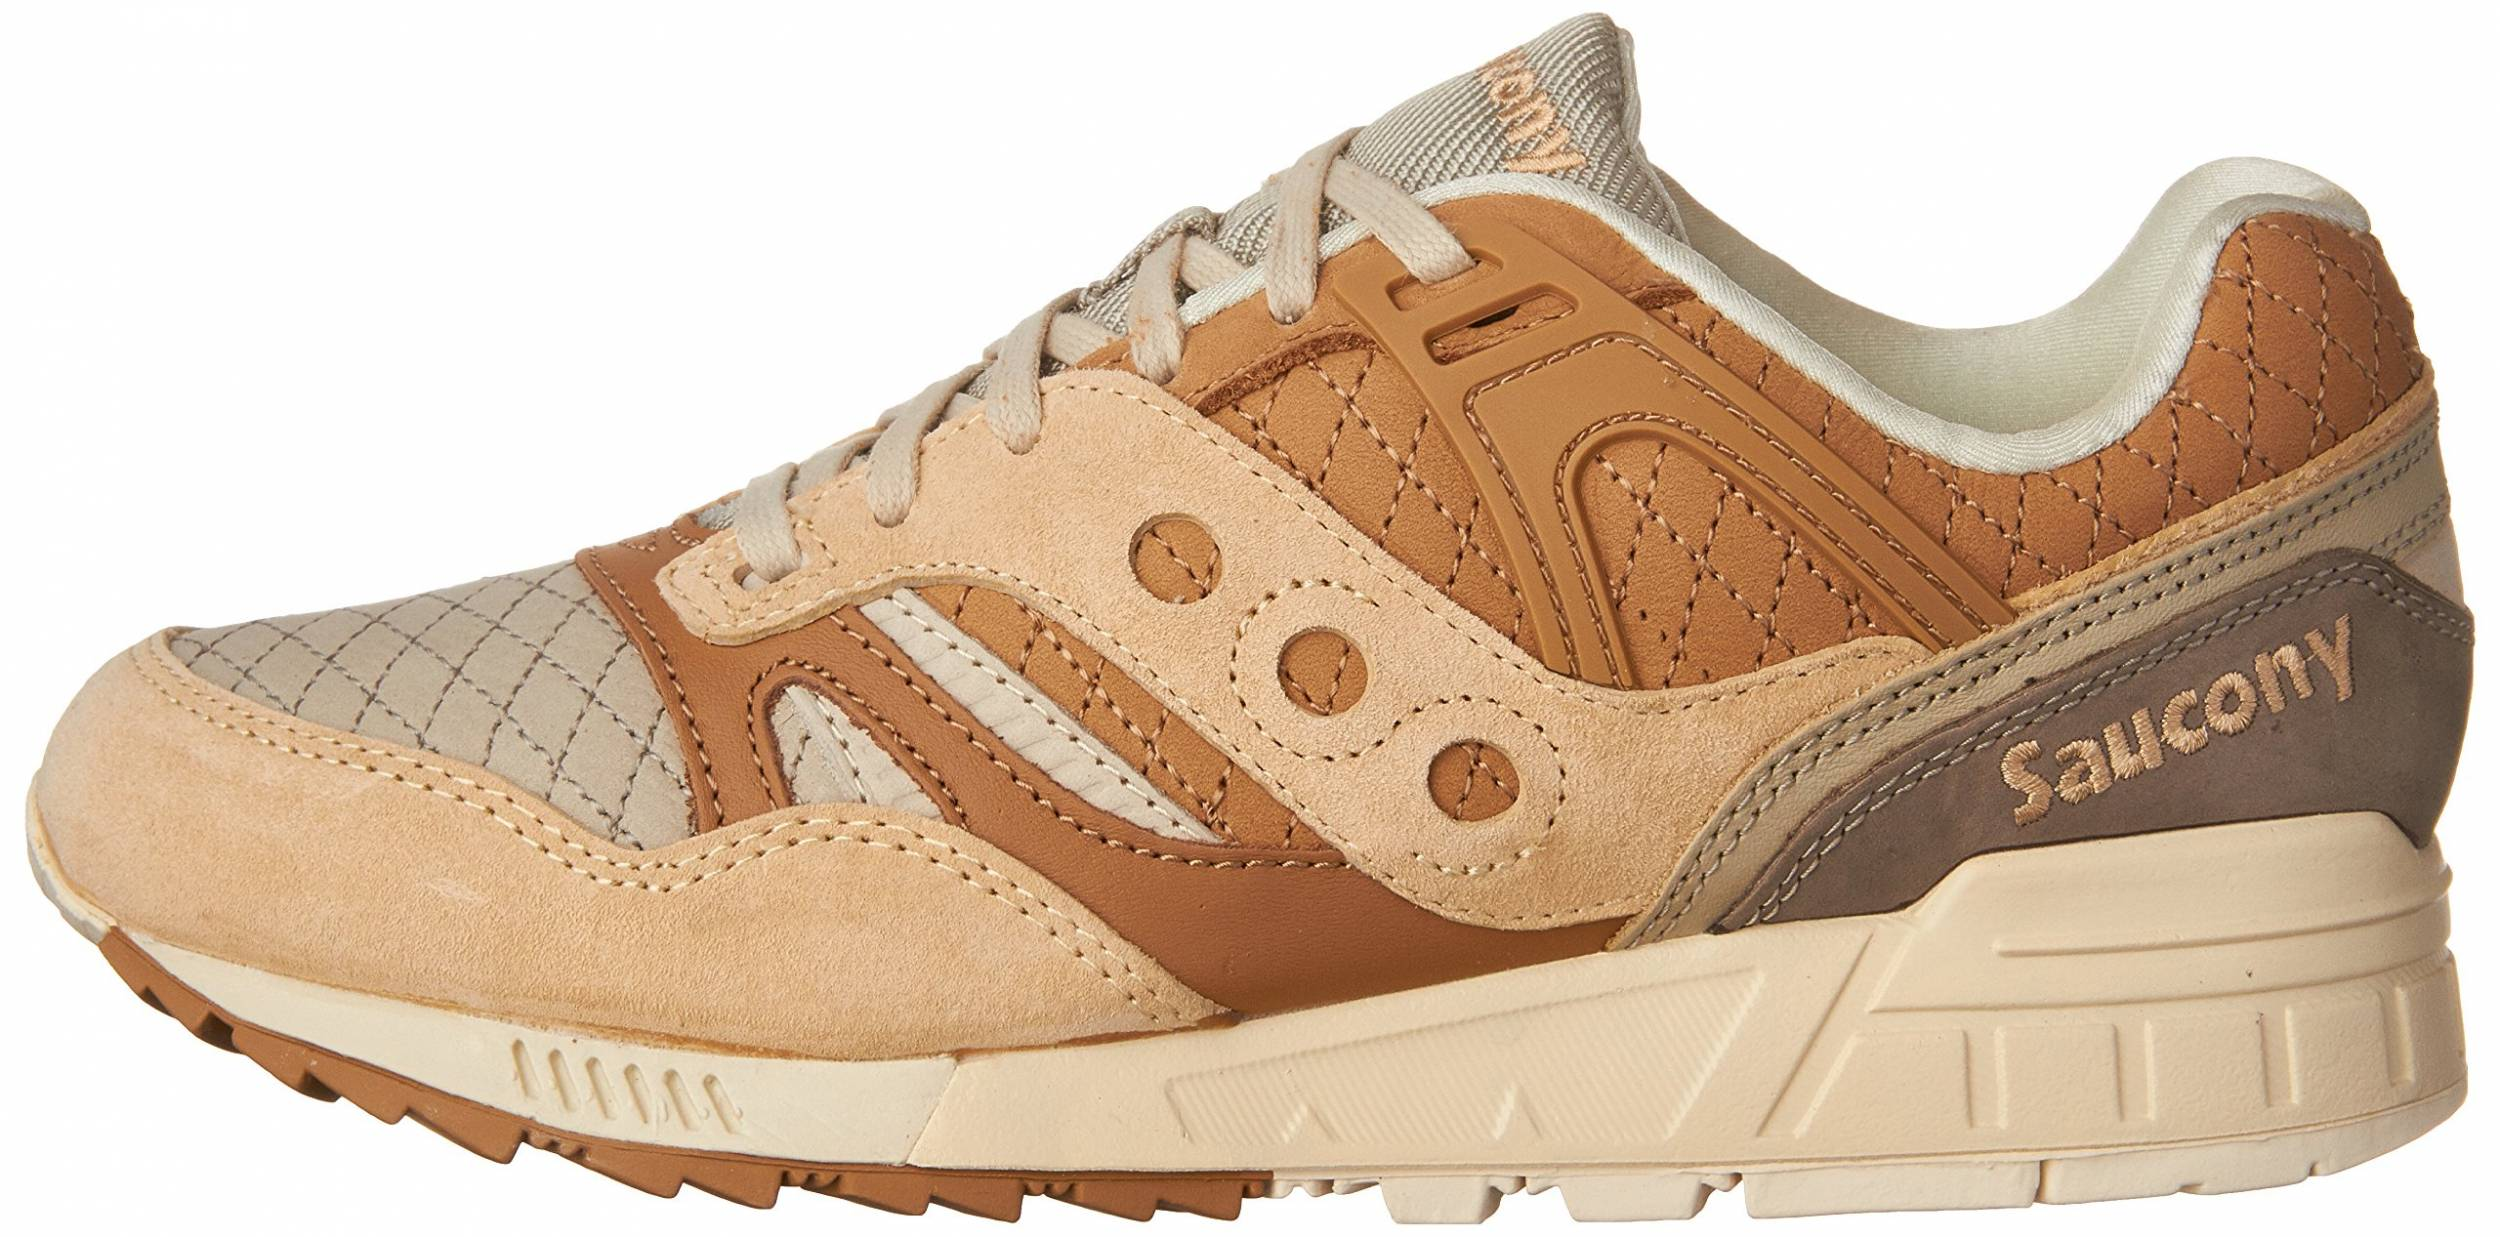 Saucony Grid SD Quilted